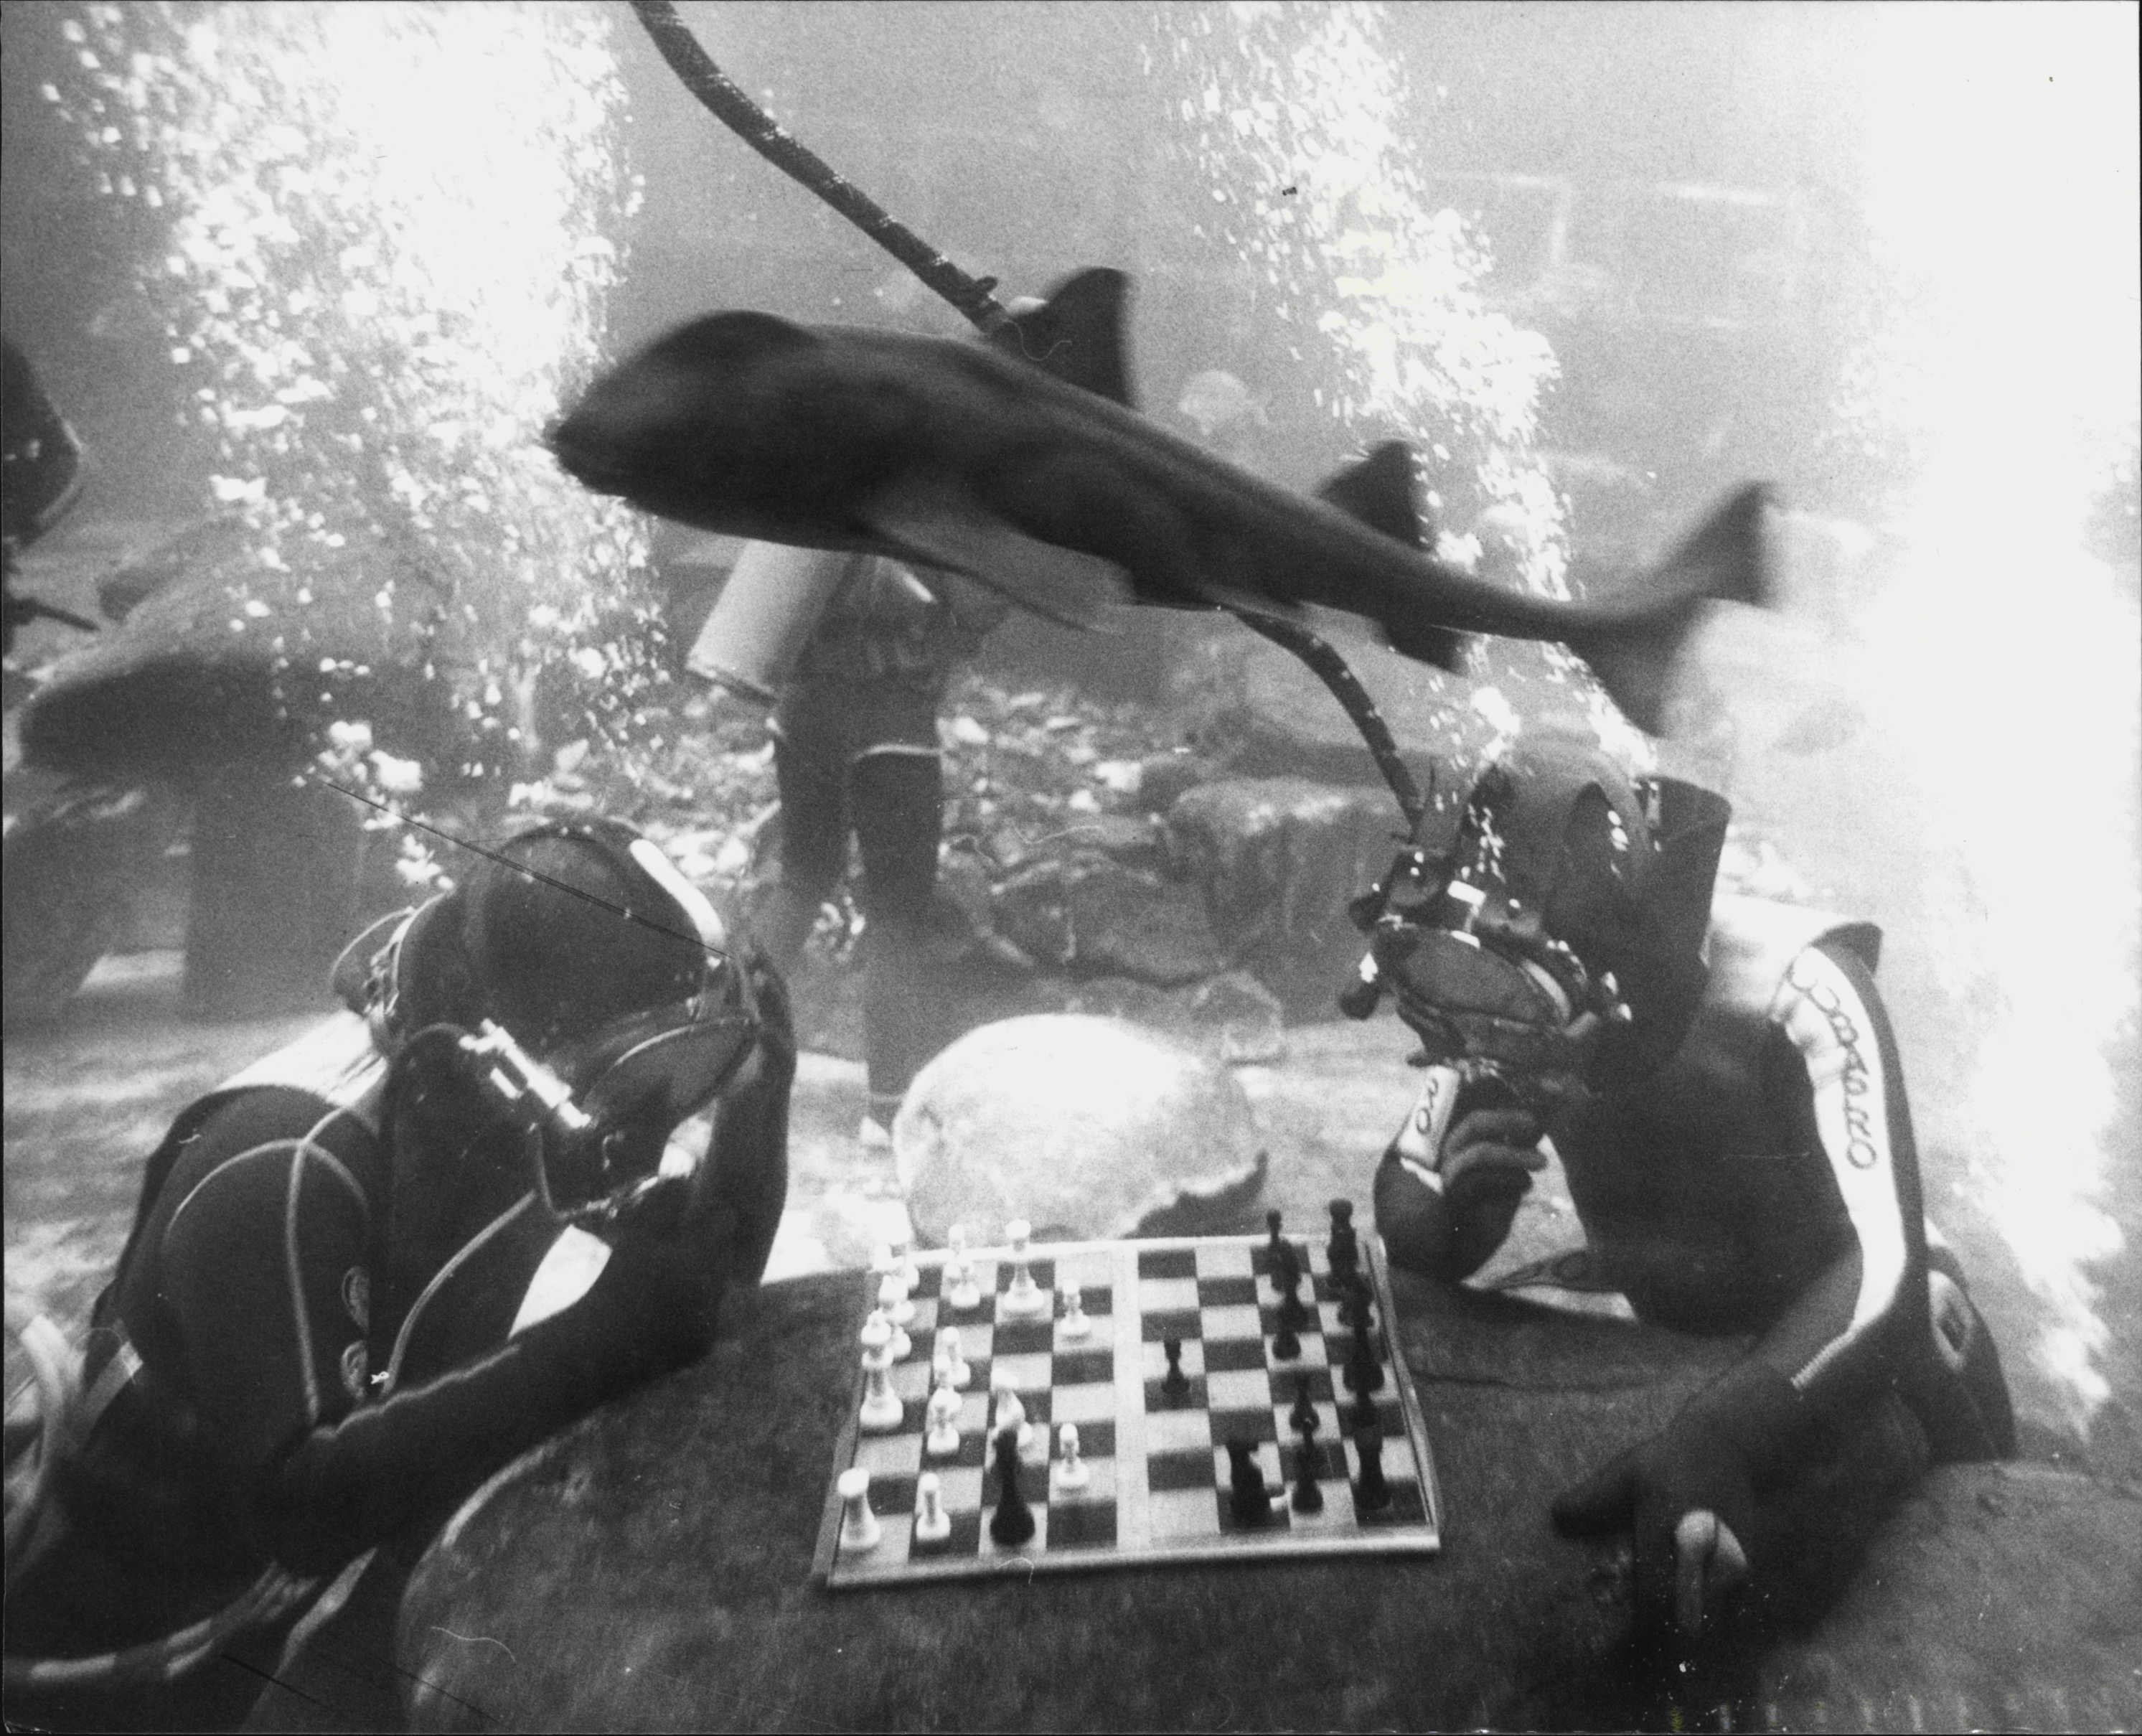 Two men in scuba suits play chess underwater as a big fish swims over their heads